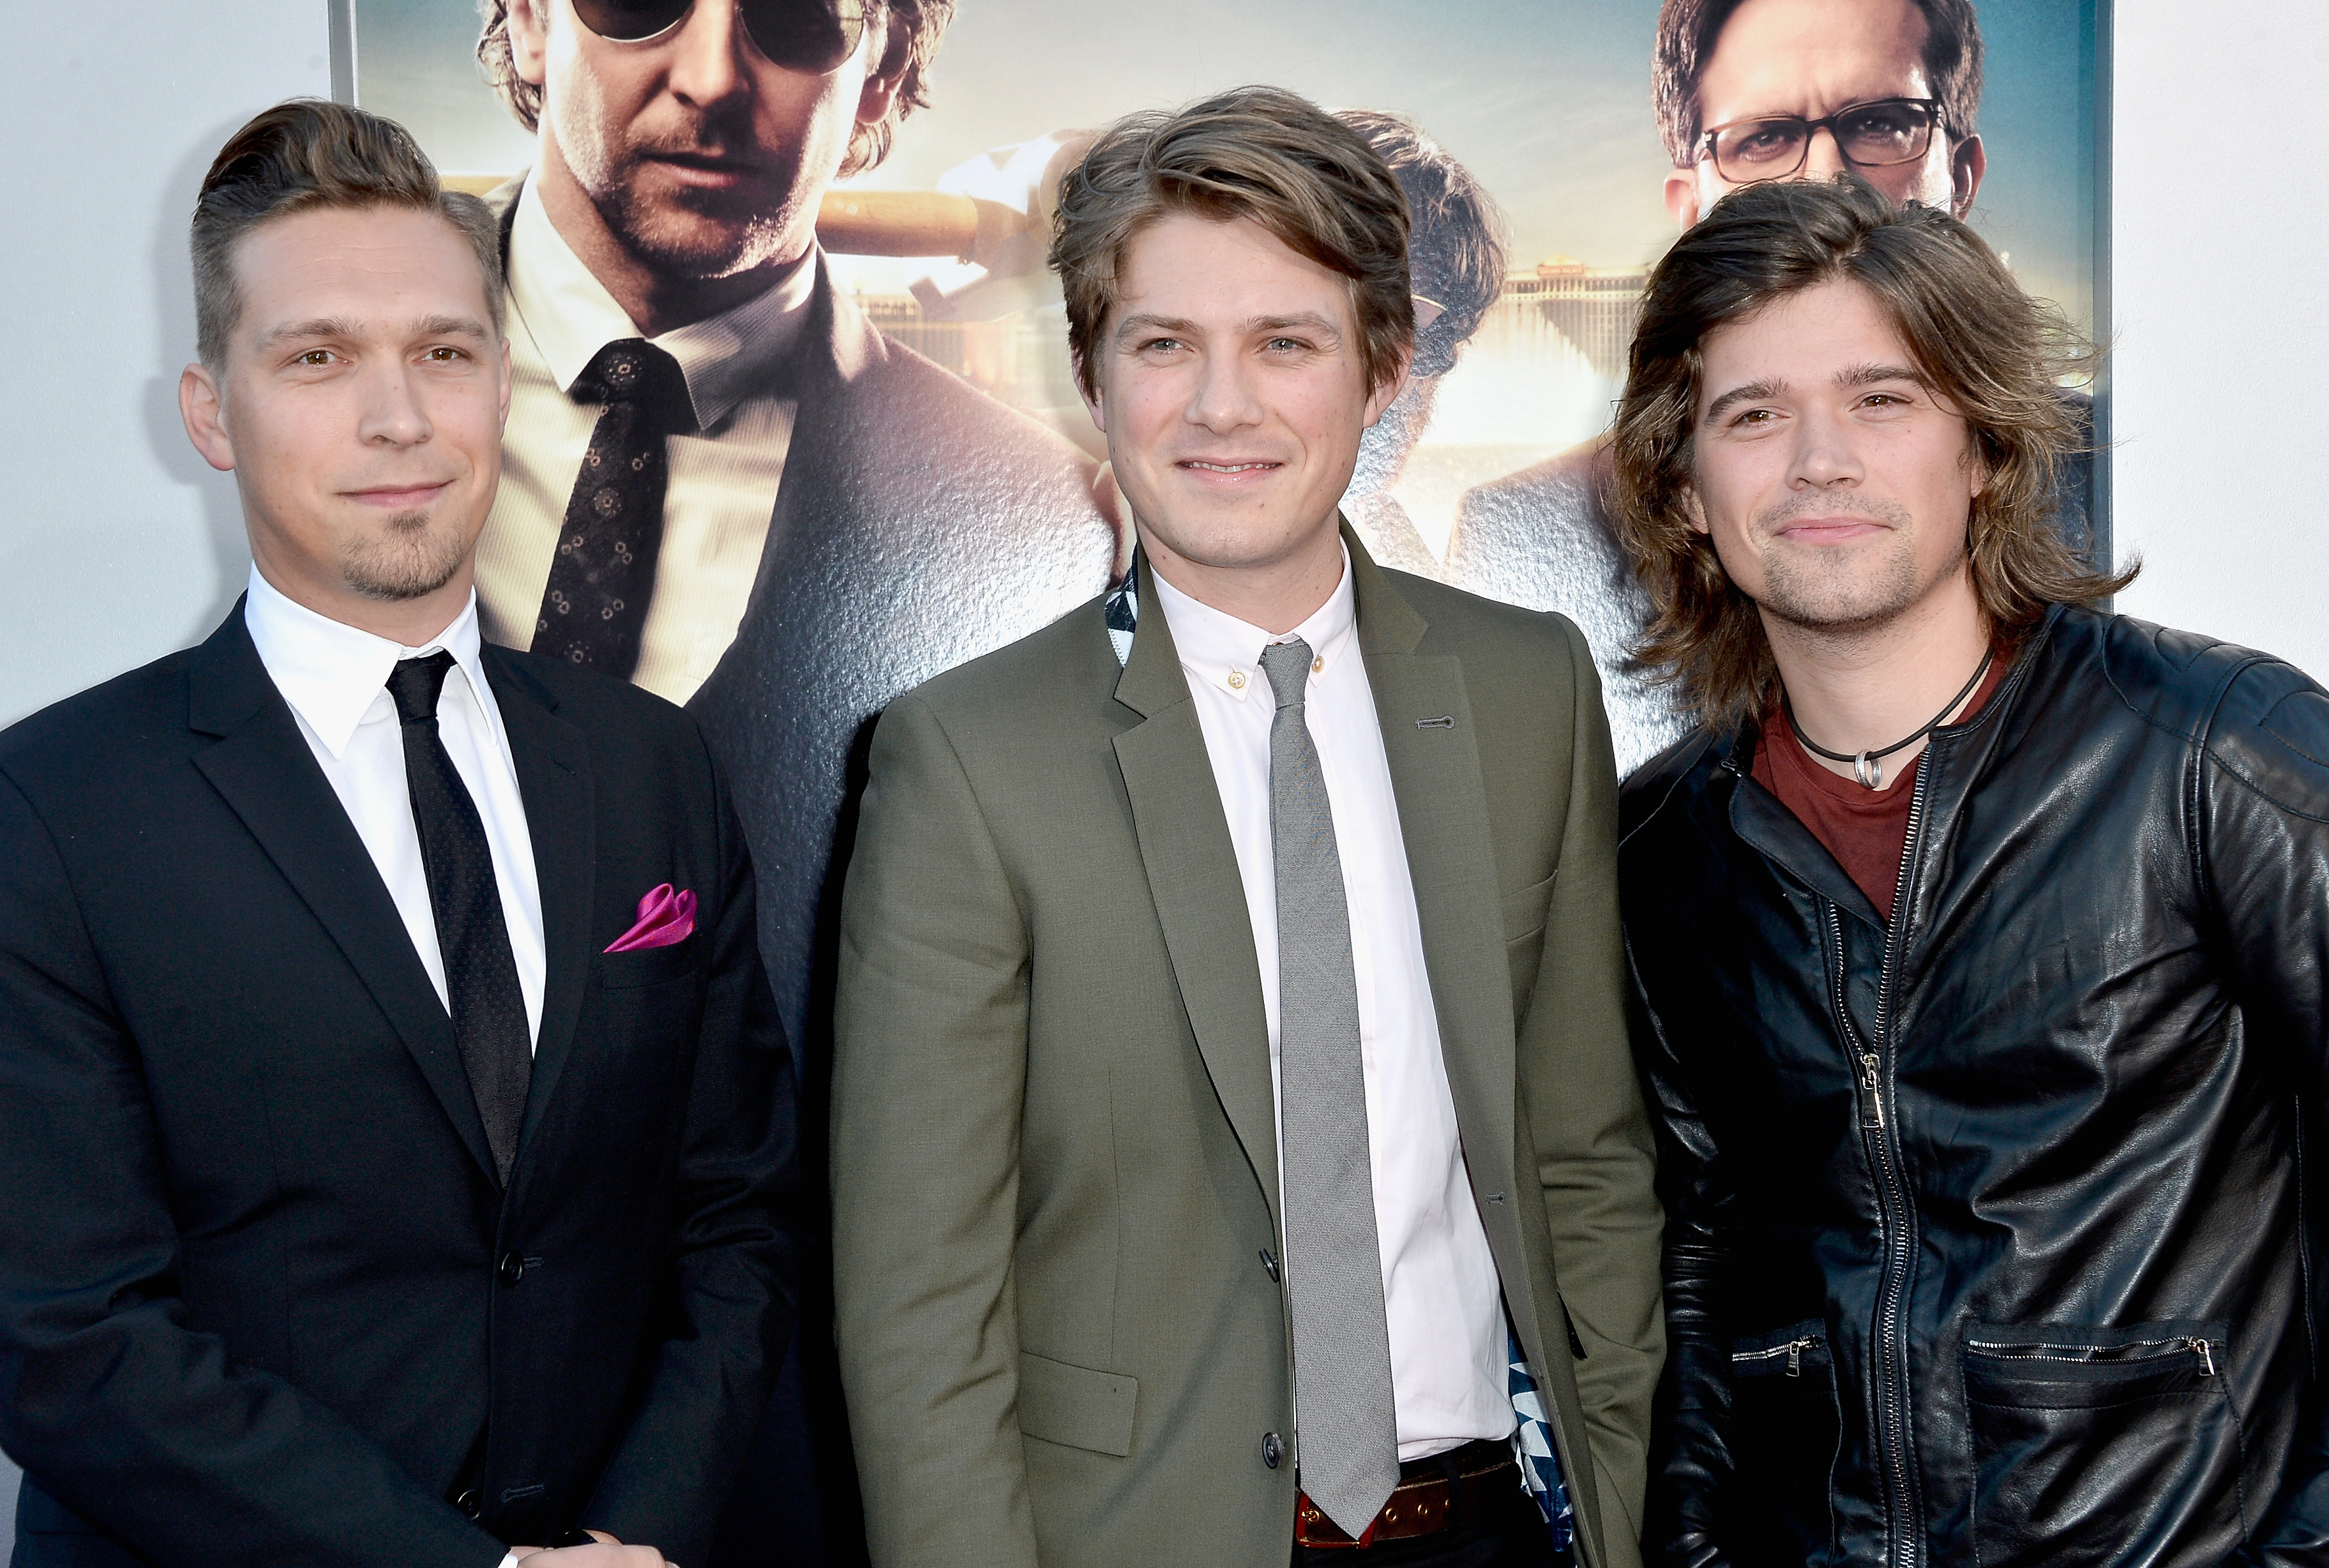 """WESTWOOD, CA - MAY 20:  (L-R) Recording artists Issac Hanson, Taylor Hanson and Zac Hanson of Hanson attend the premiere of Warner Bros. Pictures' """"Hangover Part 3"""" at Westwood Village Theater on May 20, 2013 in Westwood, California.  (Photo by Frazer Harrison/Getty Images)"""